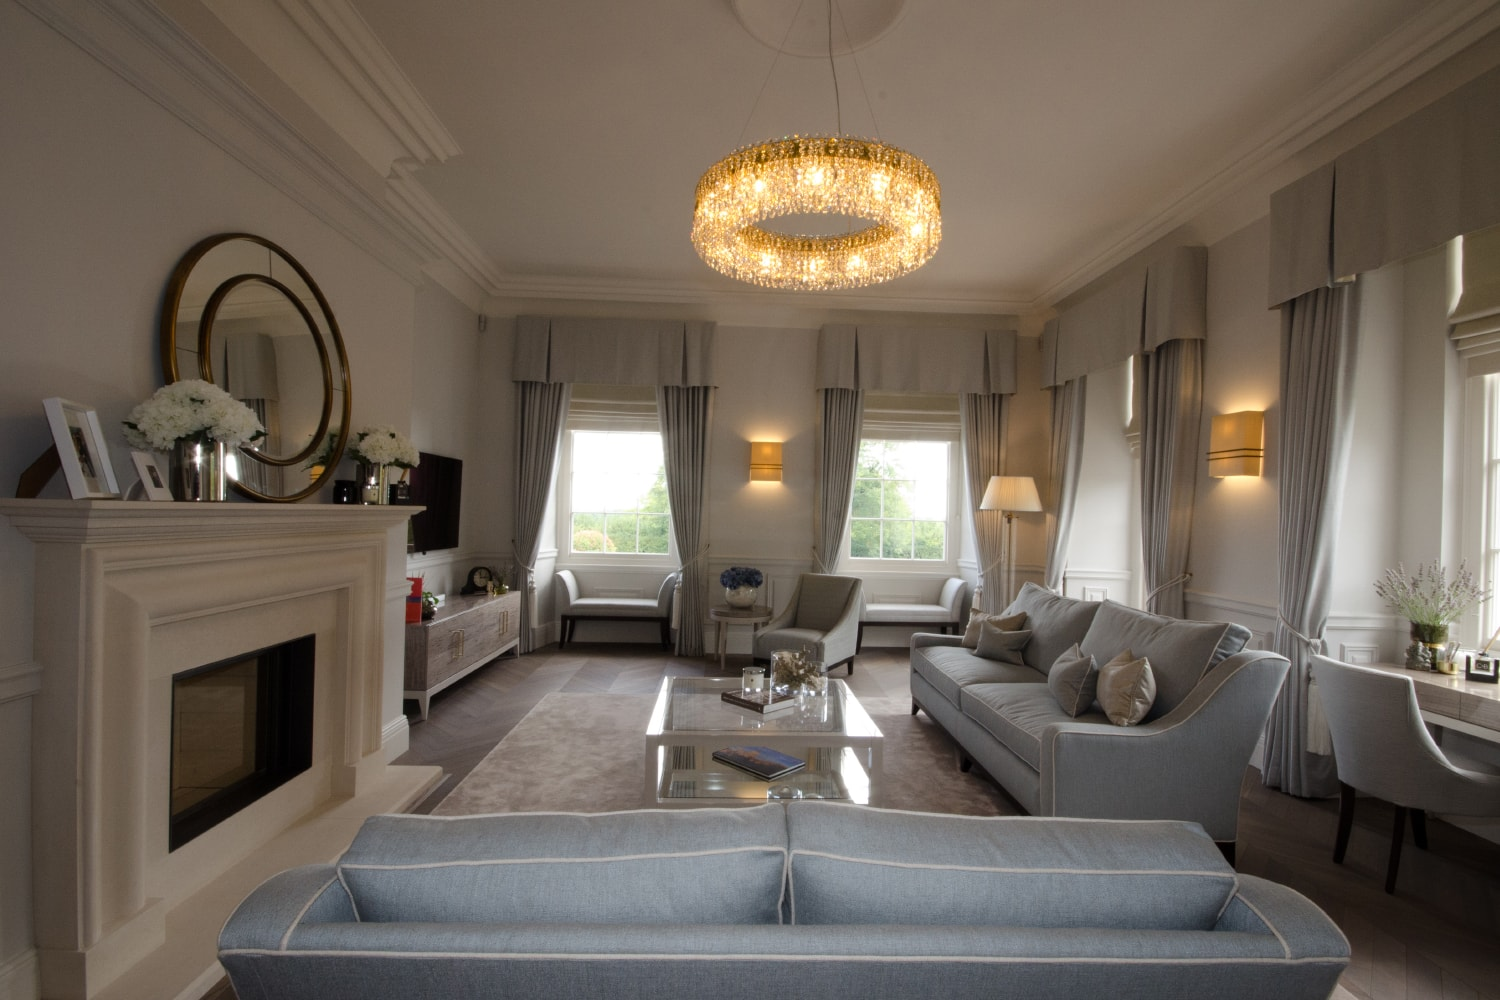 wranovsky-residential-projects-crystal-chandeliers.jpg